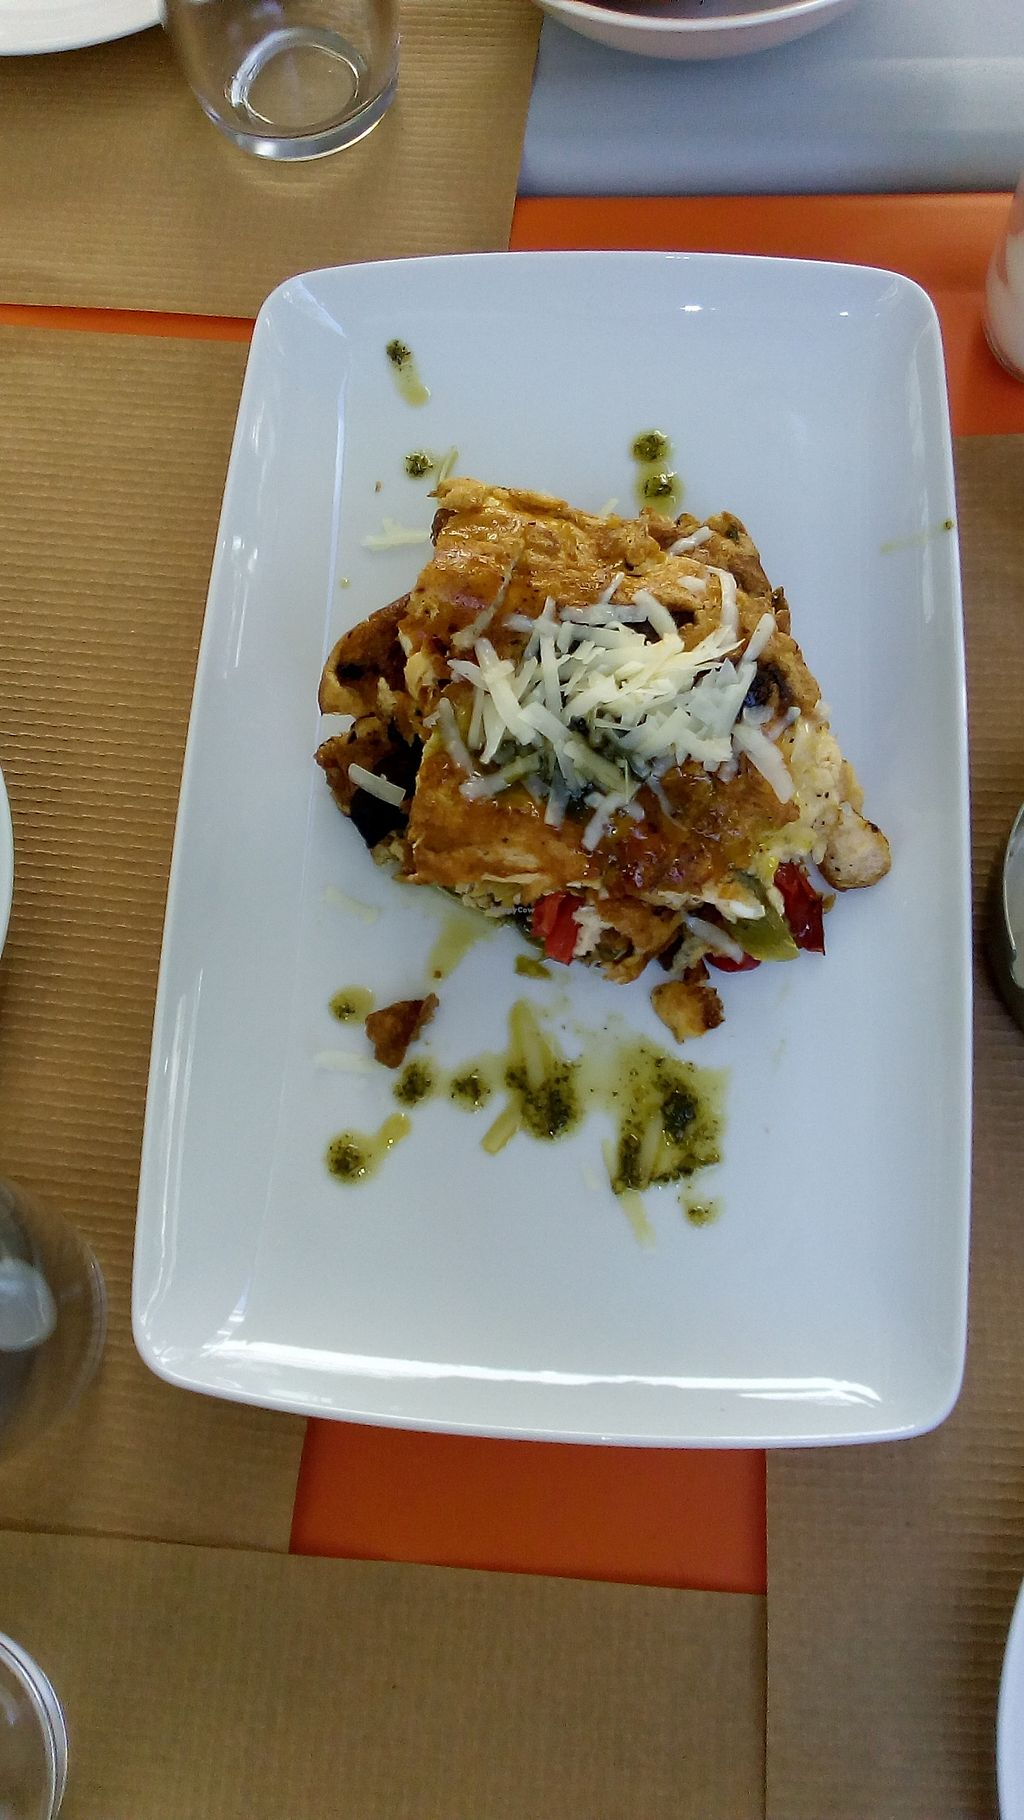 """Photo of Kardamon  by <a href=""""/members/profile/MariannaGiannakopoul"""">MariannaGiannakopoul</a> <br/>Omelette millefeuille with vegetables gruyere cheese and sage <br/> September 20, 2017  - <a href='/contact/abuse/image/95927/306357'>Report</a>"""